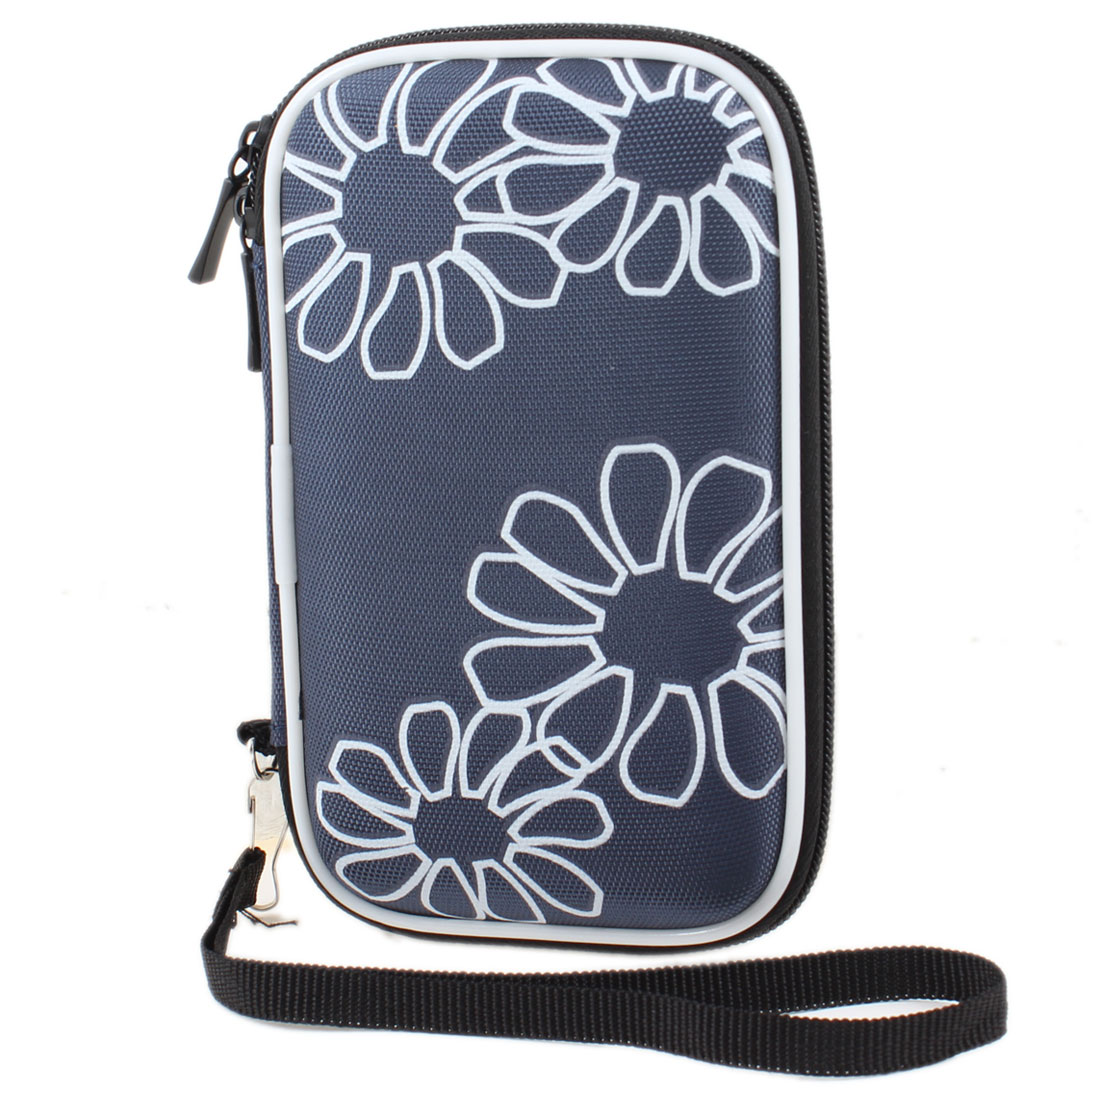 "Dark Blue Protective Case Bag Pouch Zipper Closure for 2.5"" HDD Hard Drive Disk"